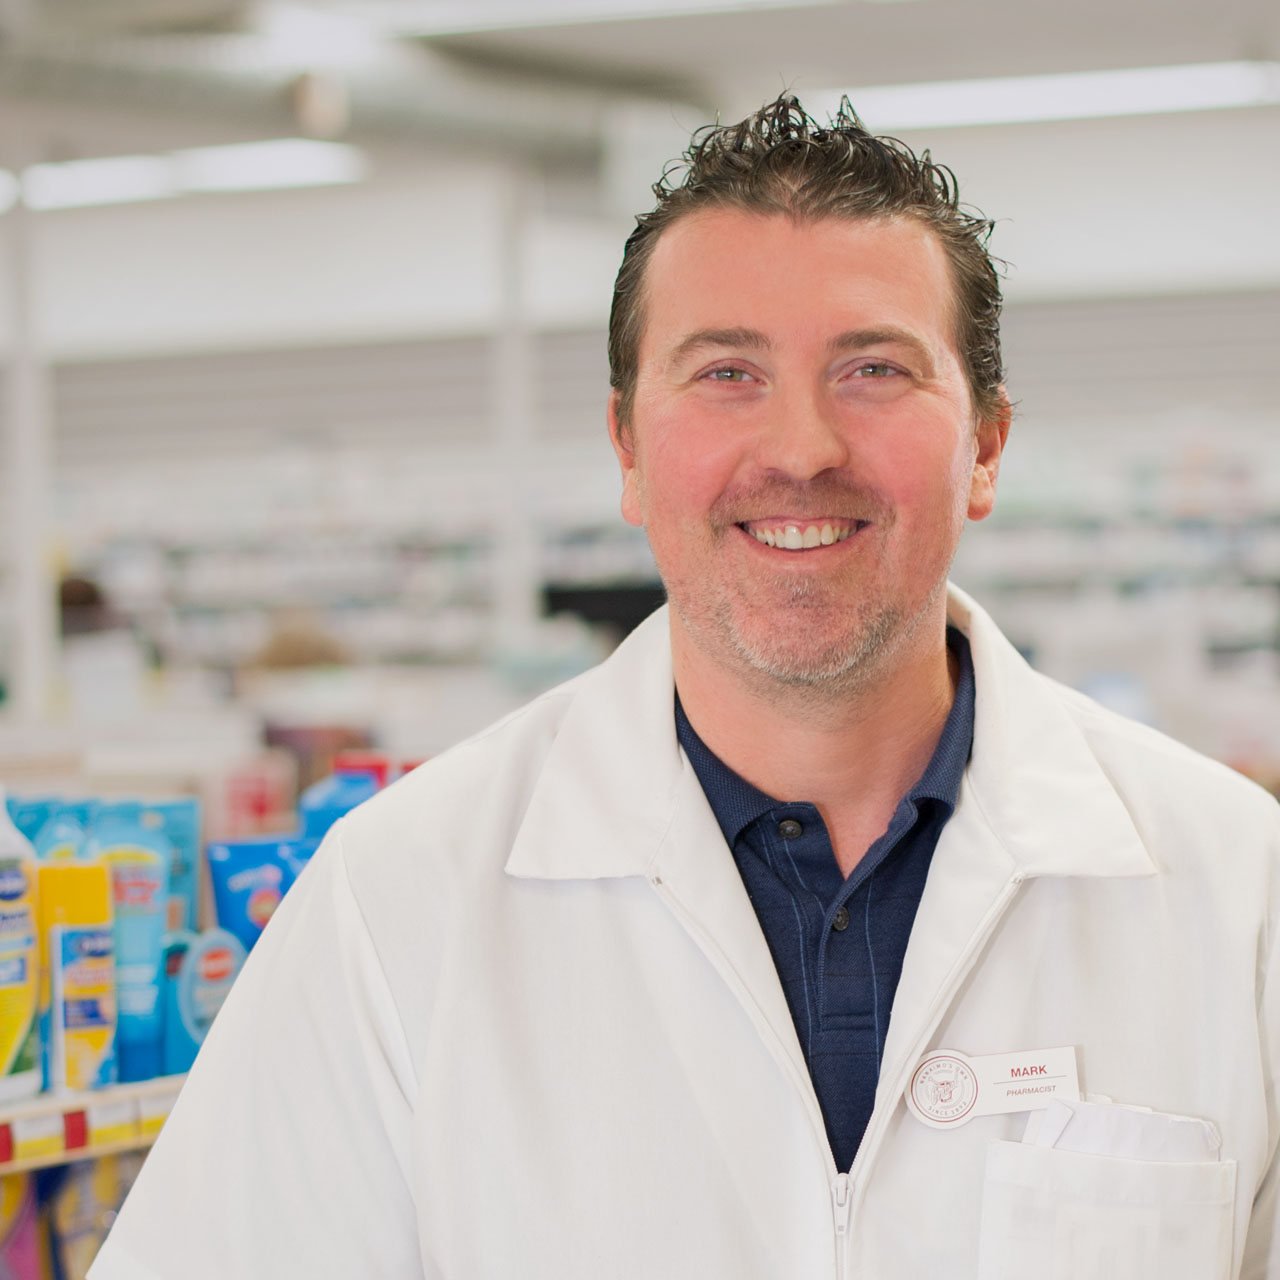 Find our pharmacist Mark at our Beban location